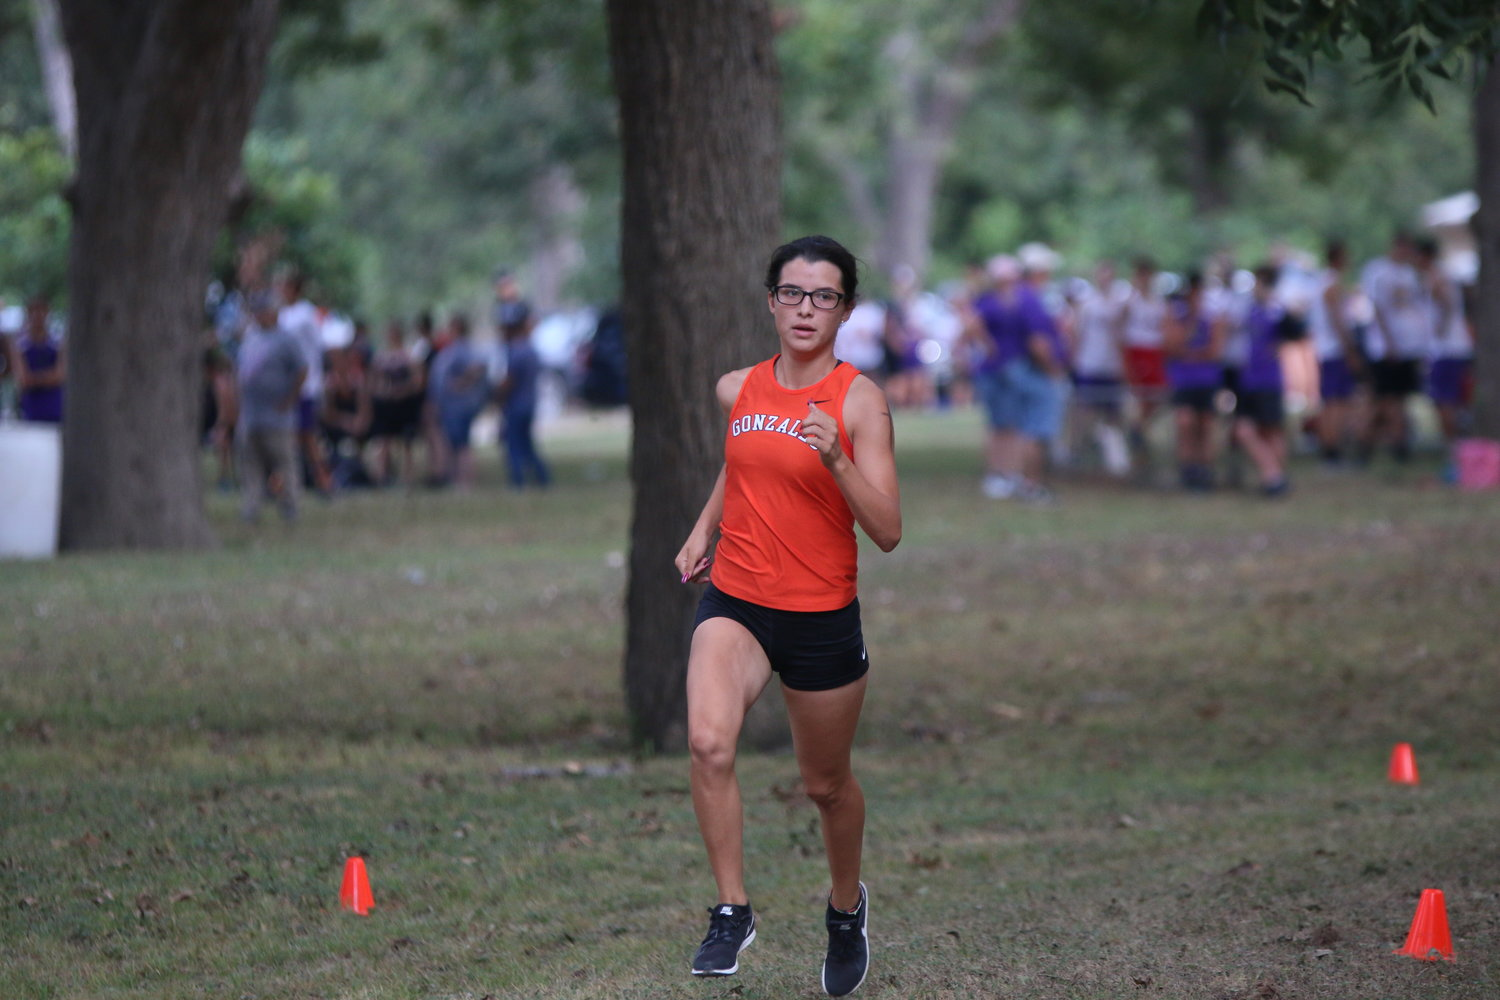 Veronica Moreno turns a corner in the Gonzales Apaches cross-country team's season opening relay race on Aug. 17.